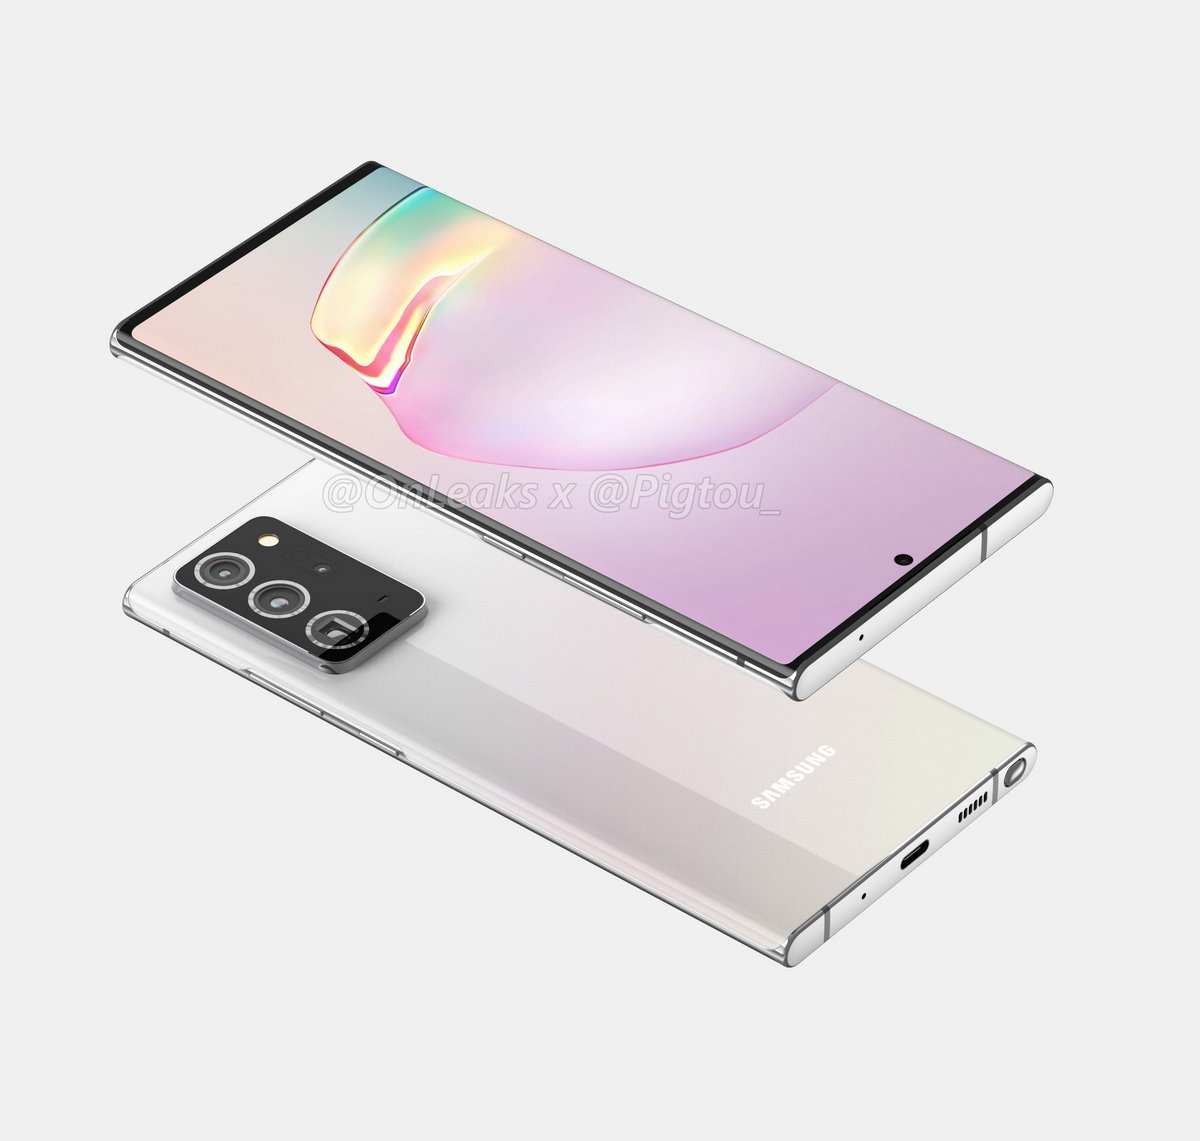 diseño del <stro />Samsung</strong>® Galaxy Note 20+ » width=»1200″ height=»1141″ srcset=»https://www.androidsis.com/wp-content/uploads/2020/05/diseño-del-samsung-galaxy-note-20-4.jpg 1200w, <a target=